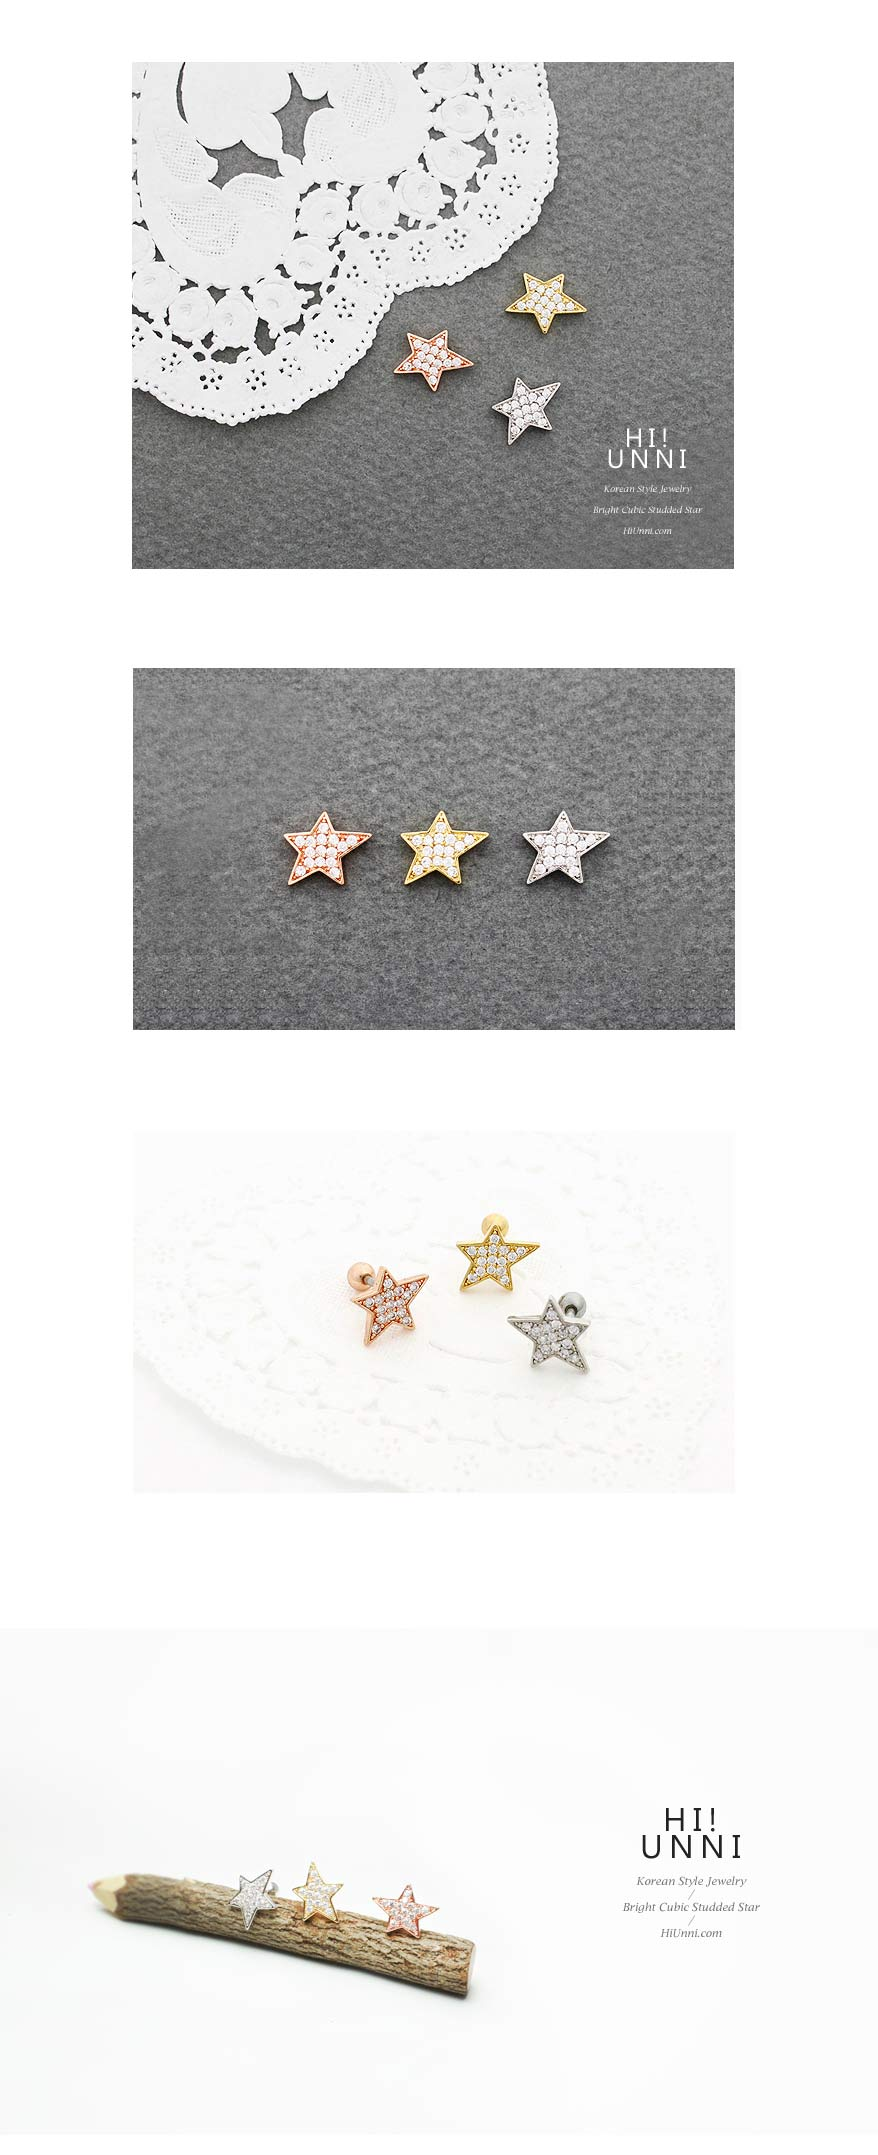 ear_studs_piercing_Cartilage_earrings_16g_316l_Surgical_Stainless_Steel_korean_asian_style_jewelry_barbell_crystal_star_3